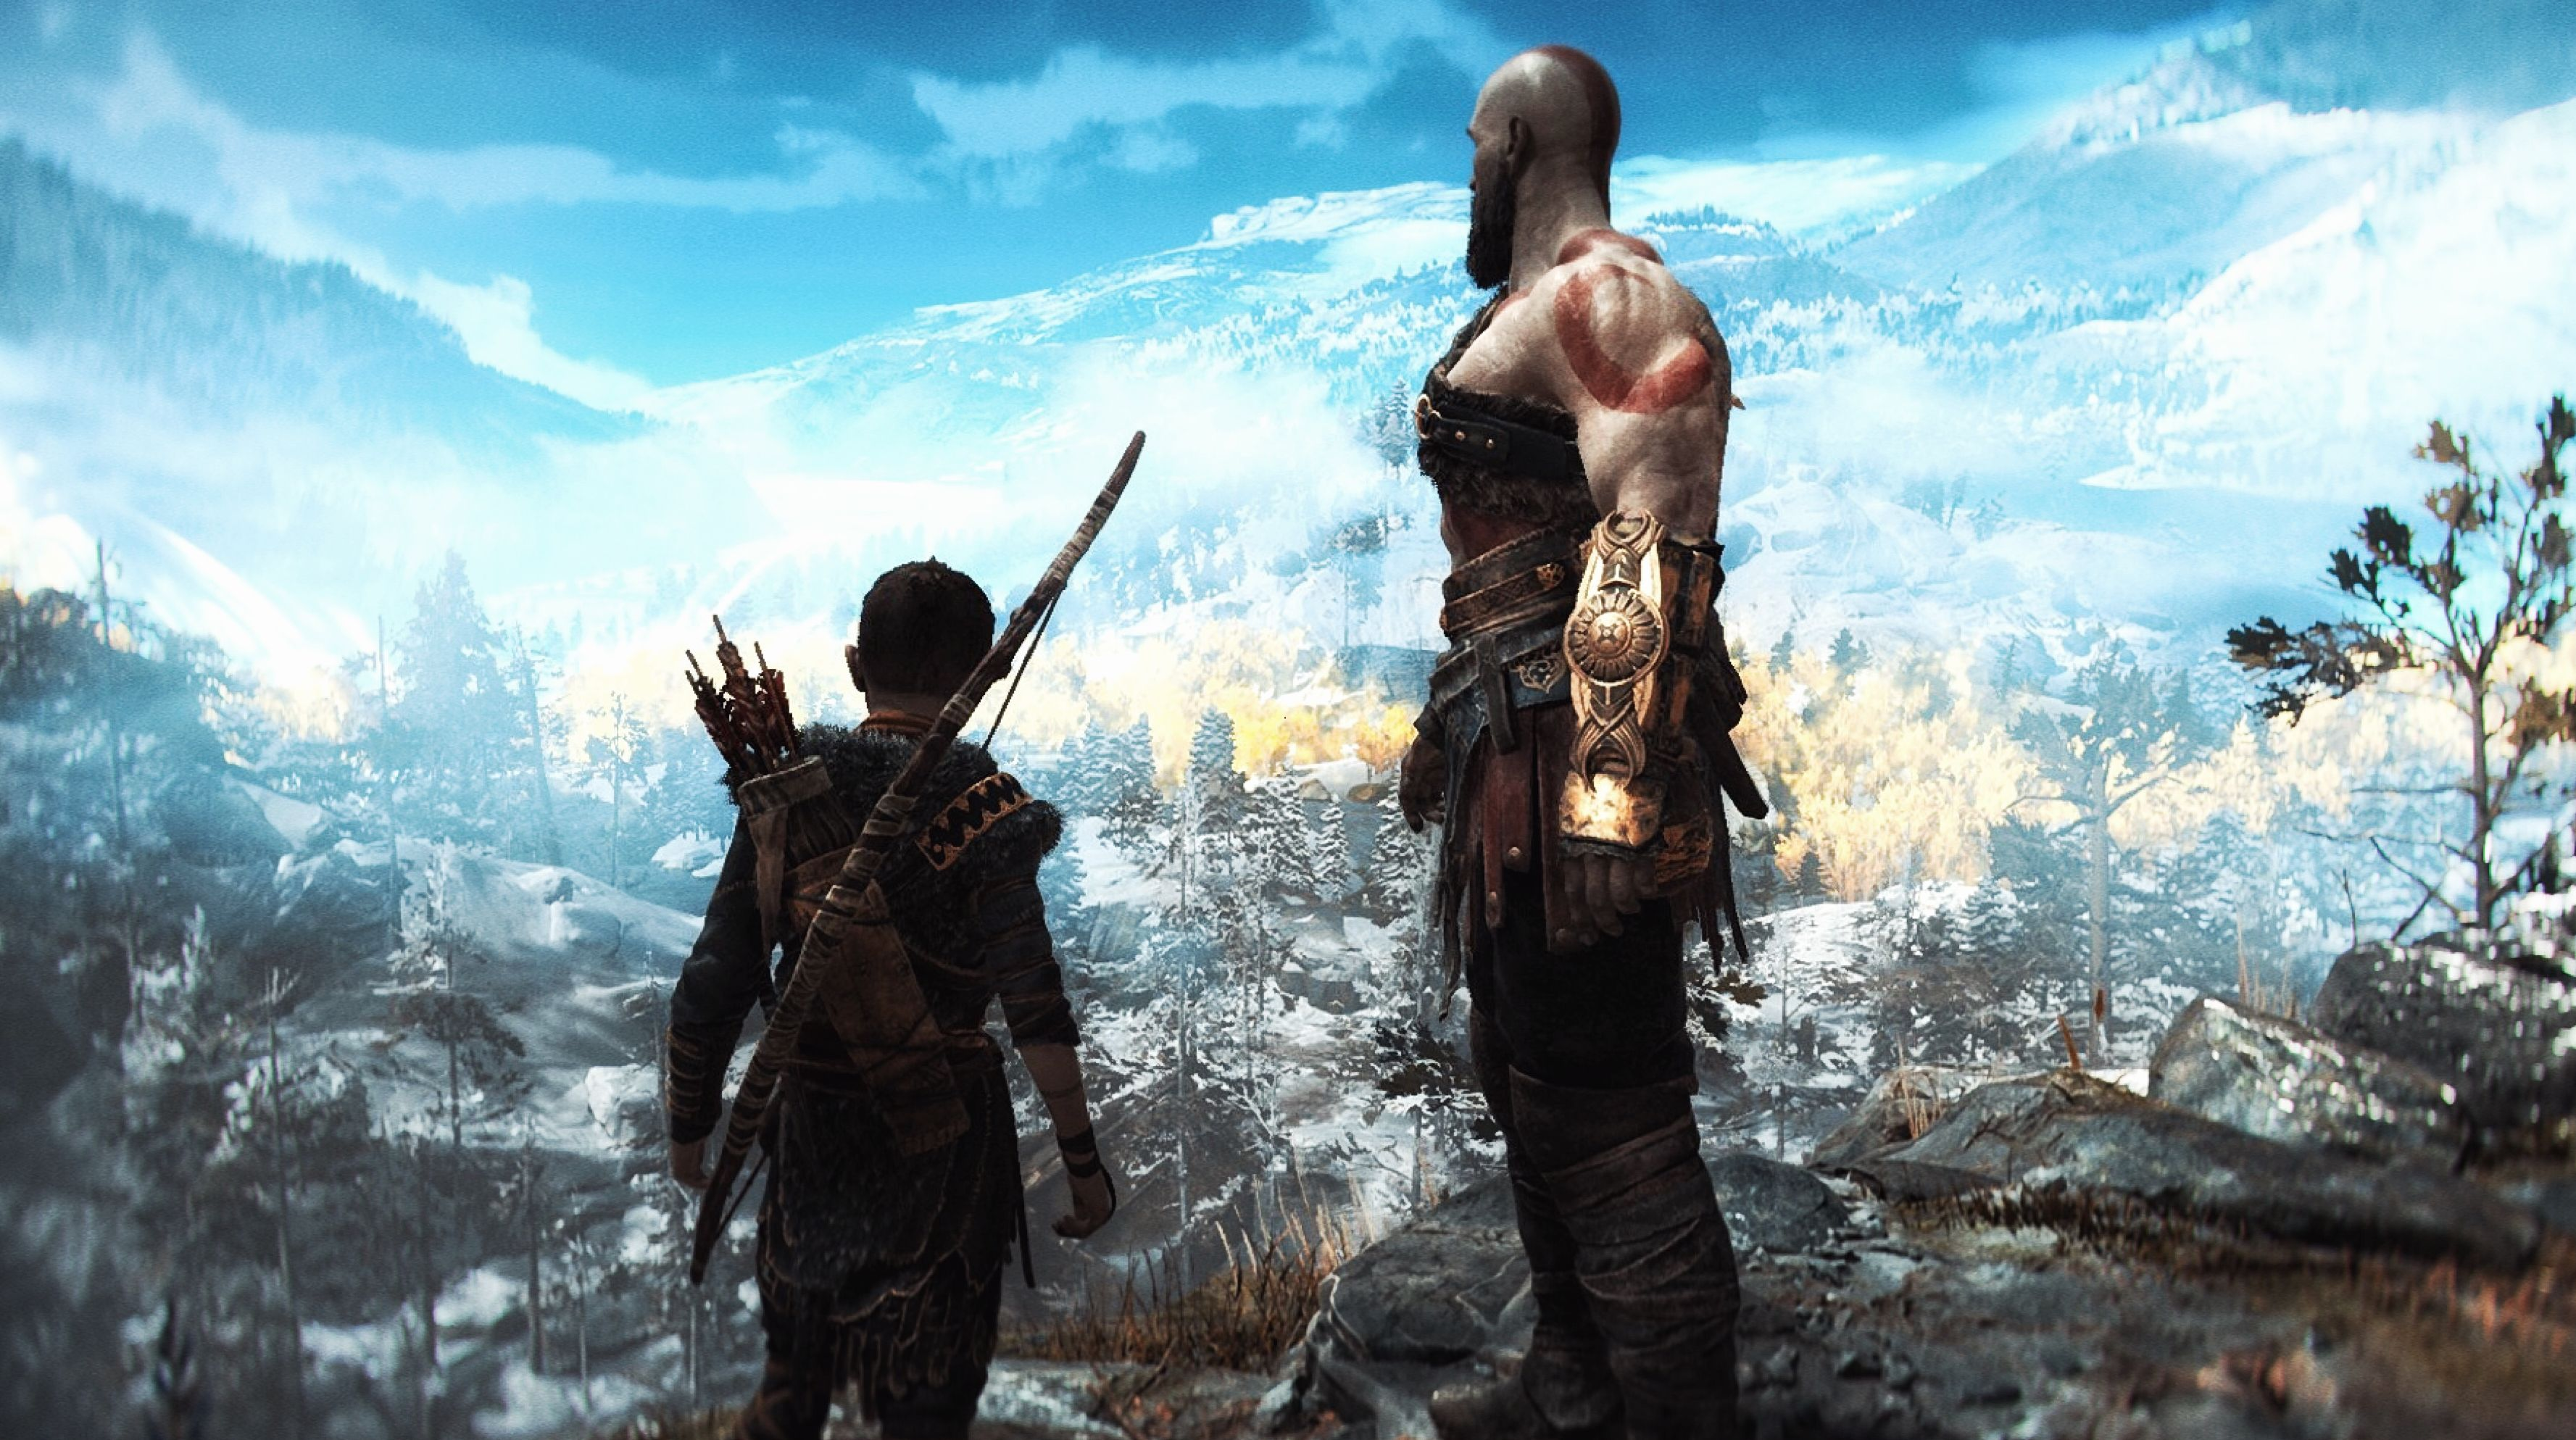 Pin by Alexei Bruton on God of War photo mode God of war